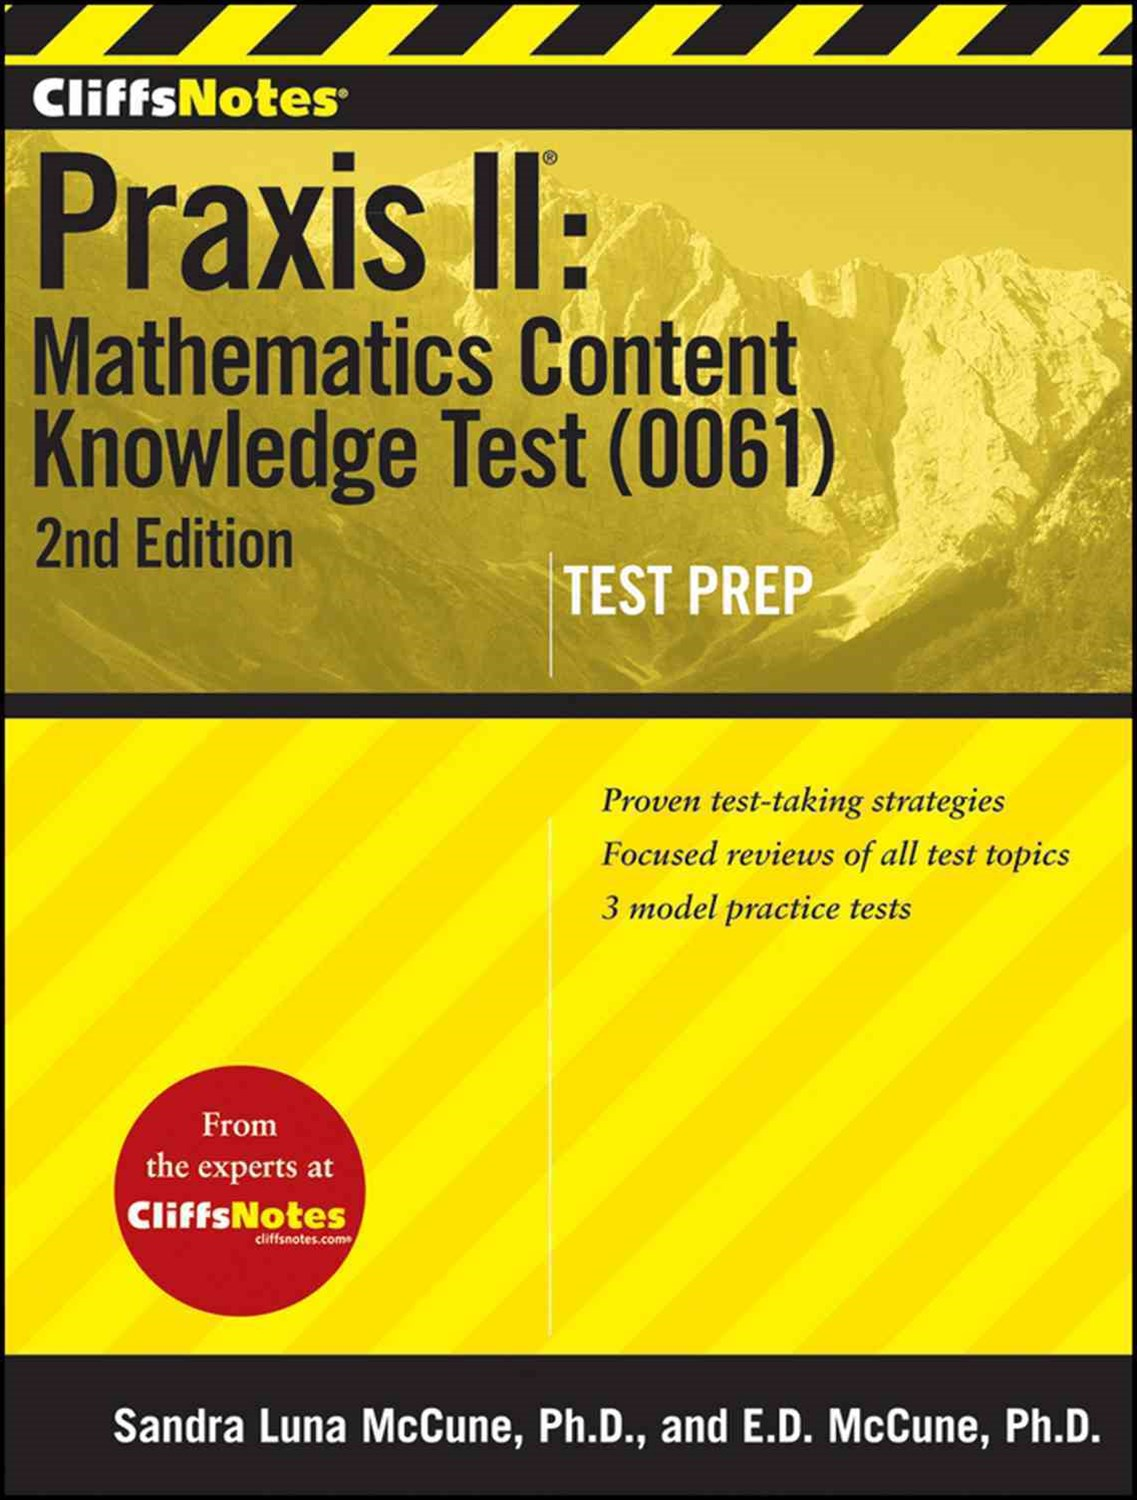 CliffsNotes Praxis II: Mathematics Content Knowledge Test (0061): Second Edition